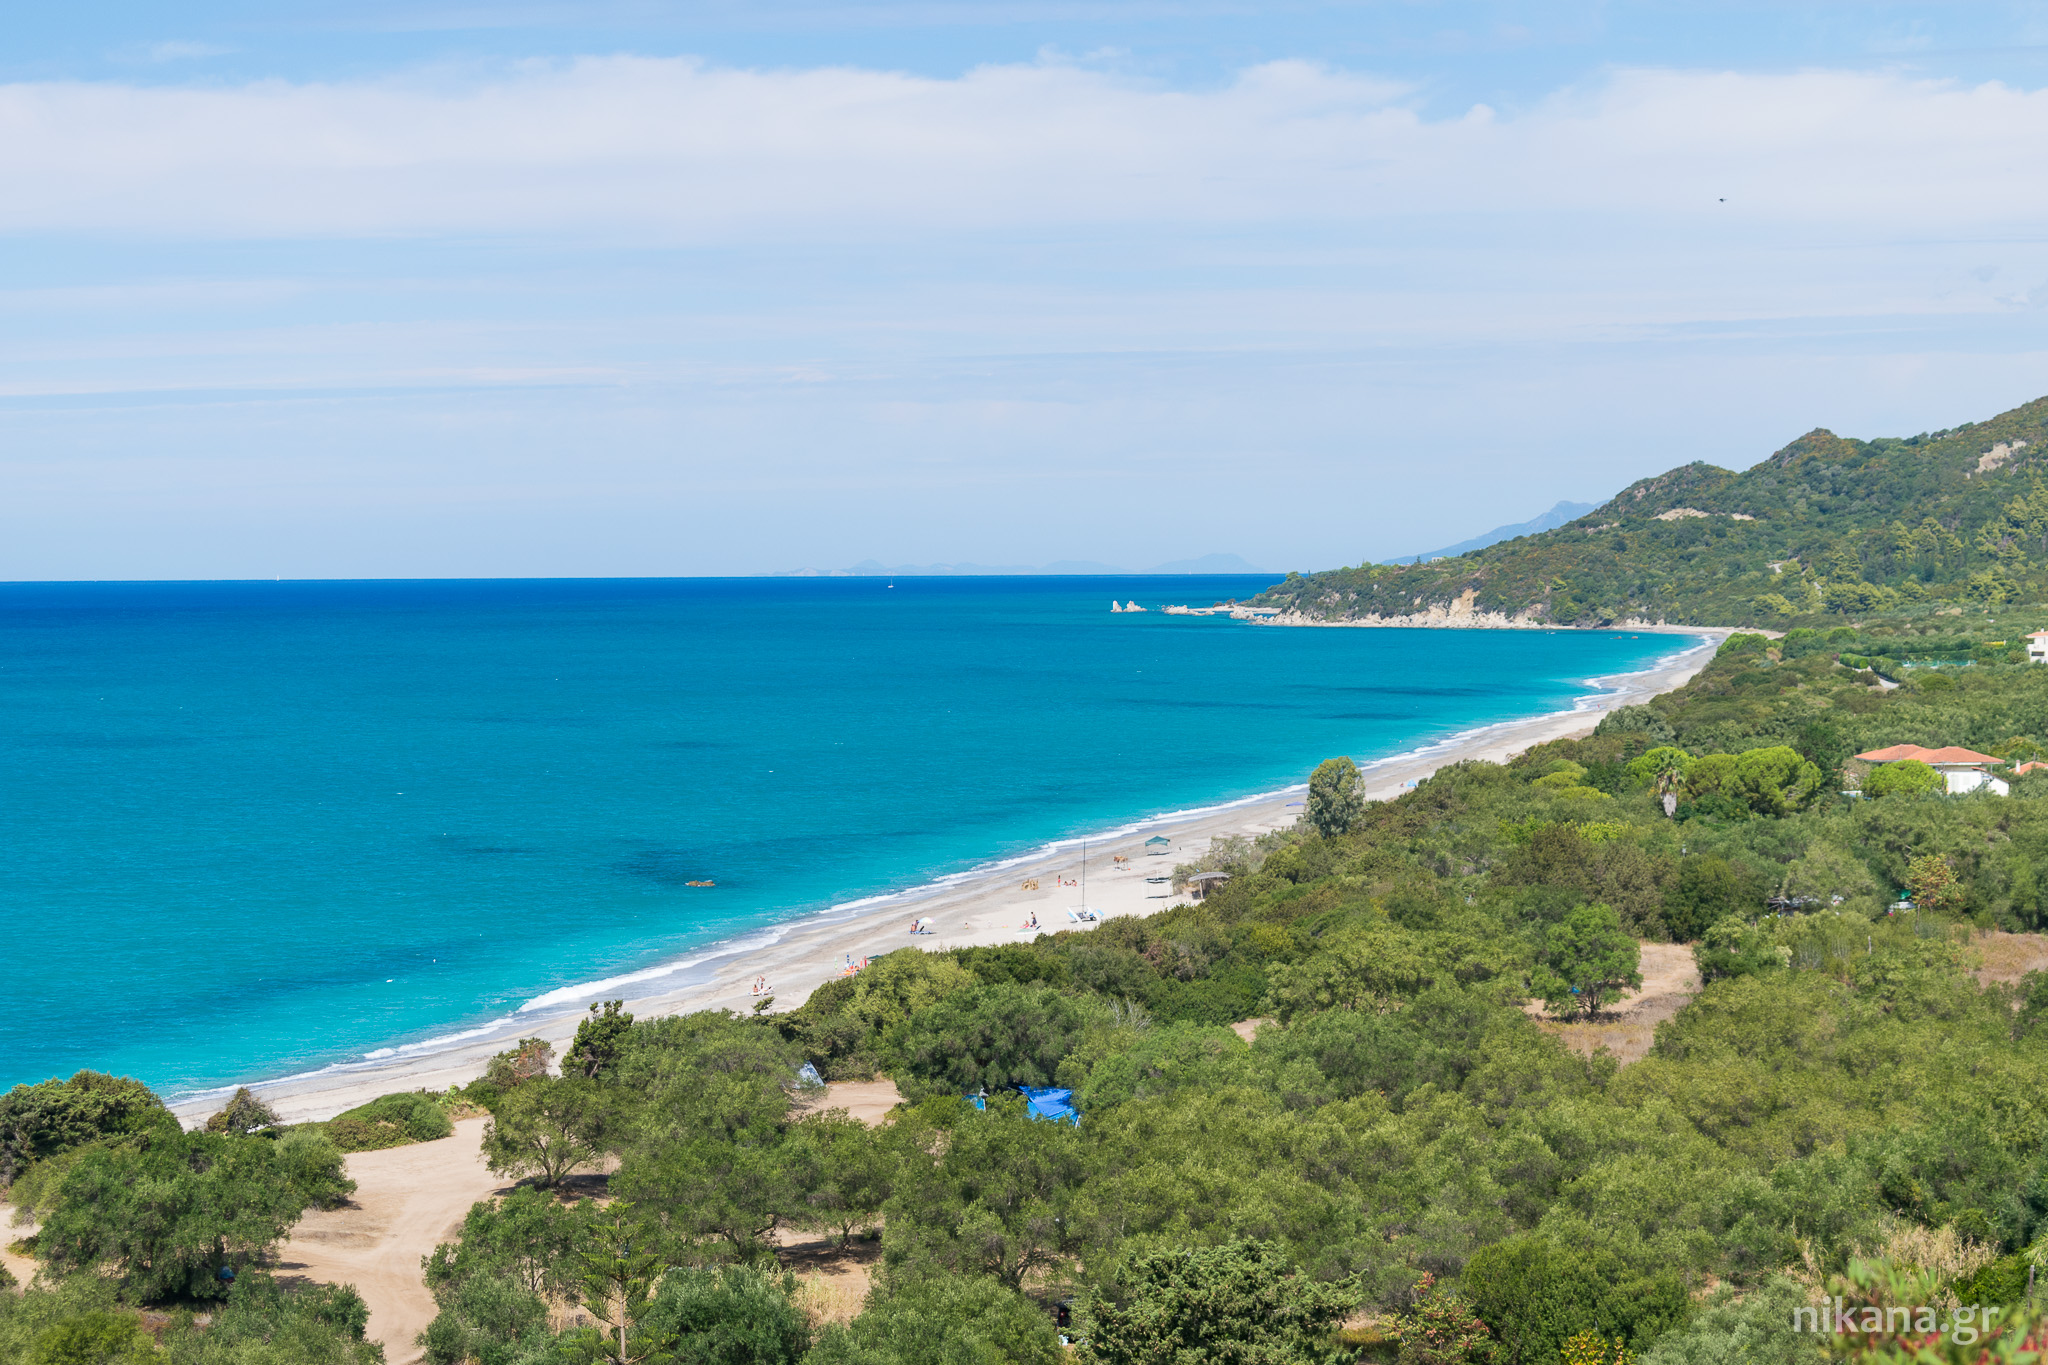 kastrosikia beach preveza greece (10)